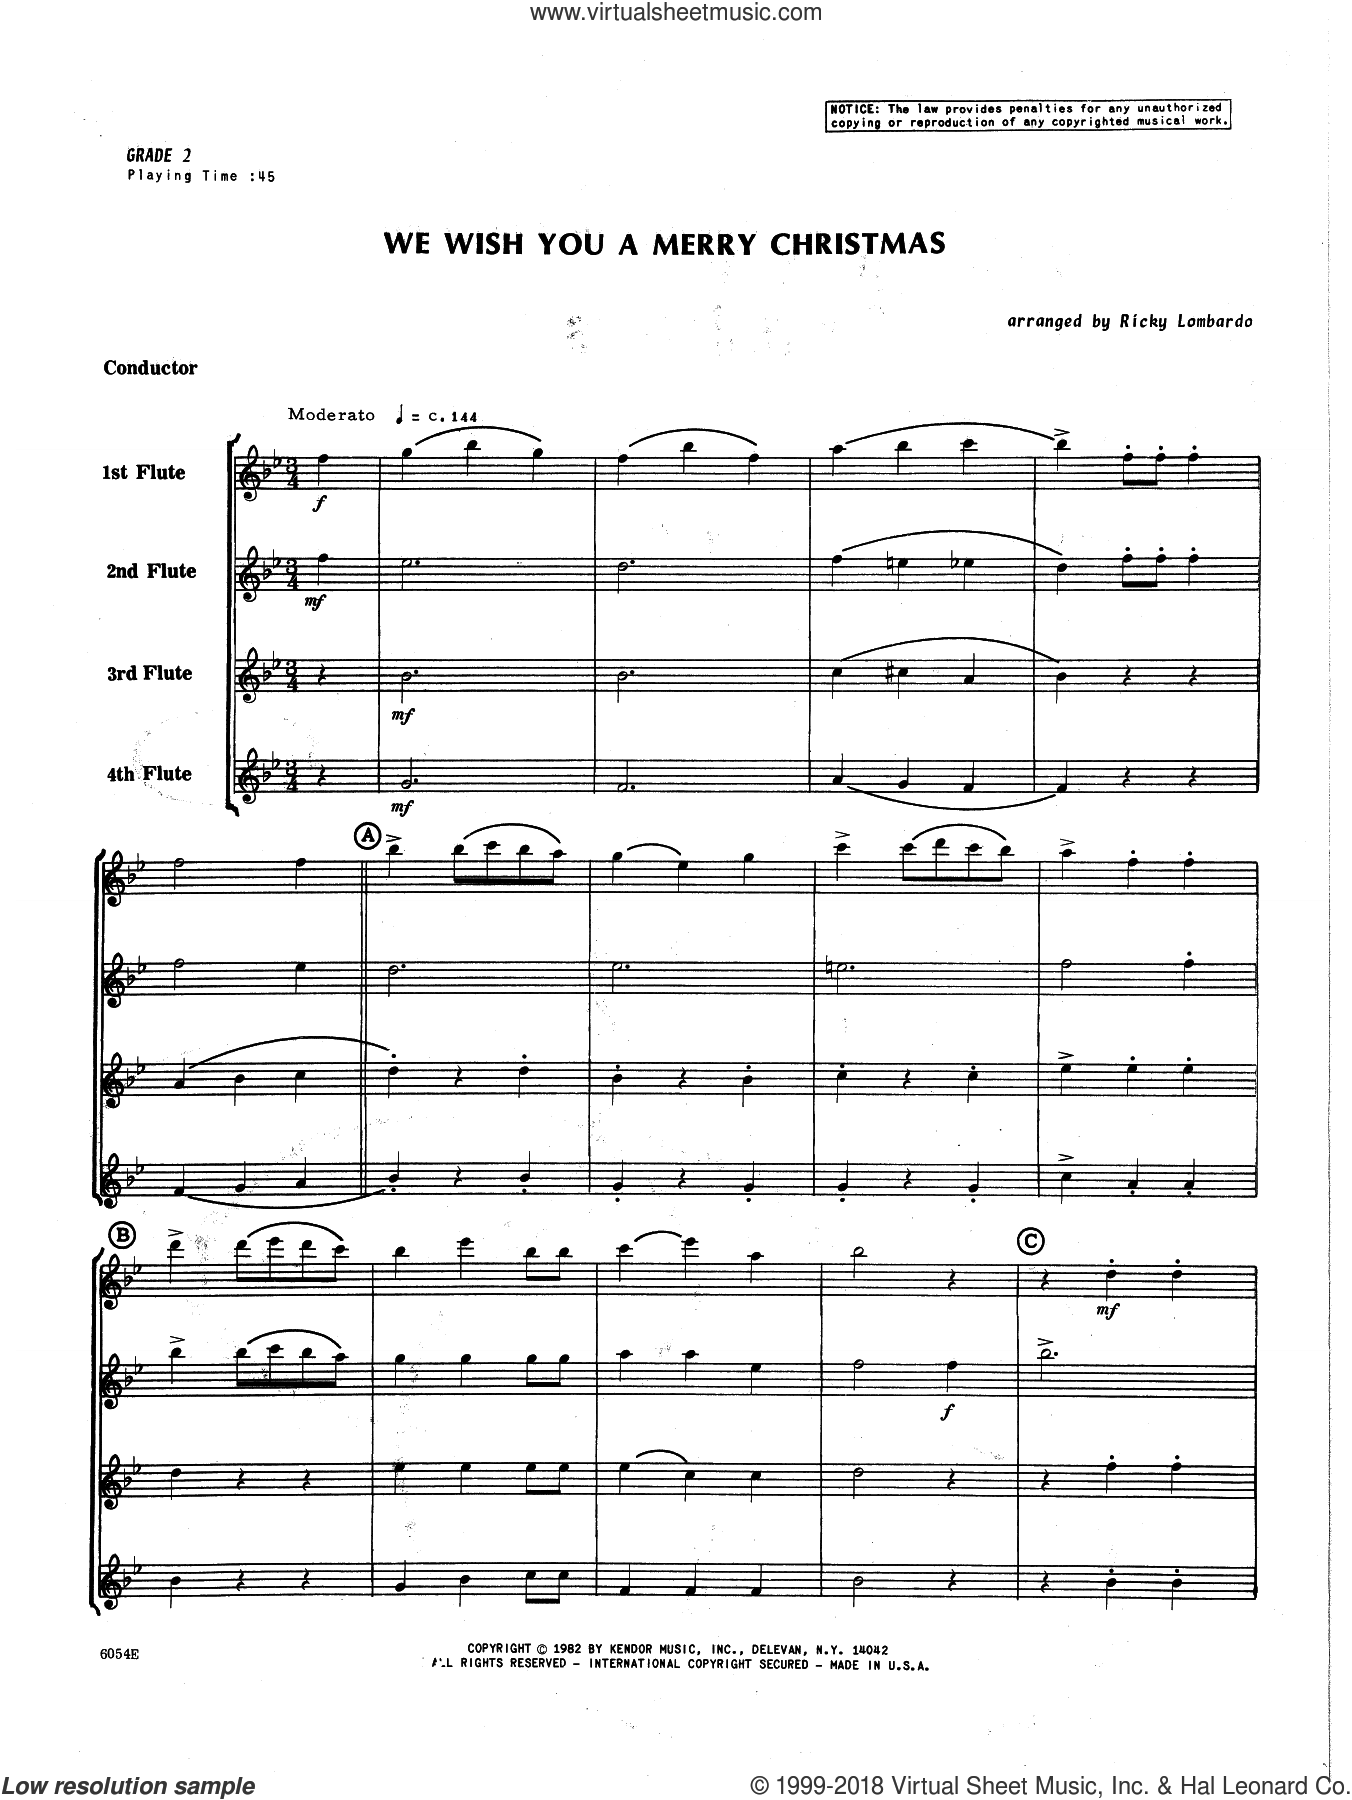 We Wish You A Merry Christmas (COMPLETE) sheet music for flute quartet by Ricky Lombardo, intermediate skill level